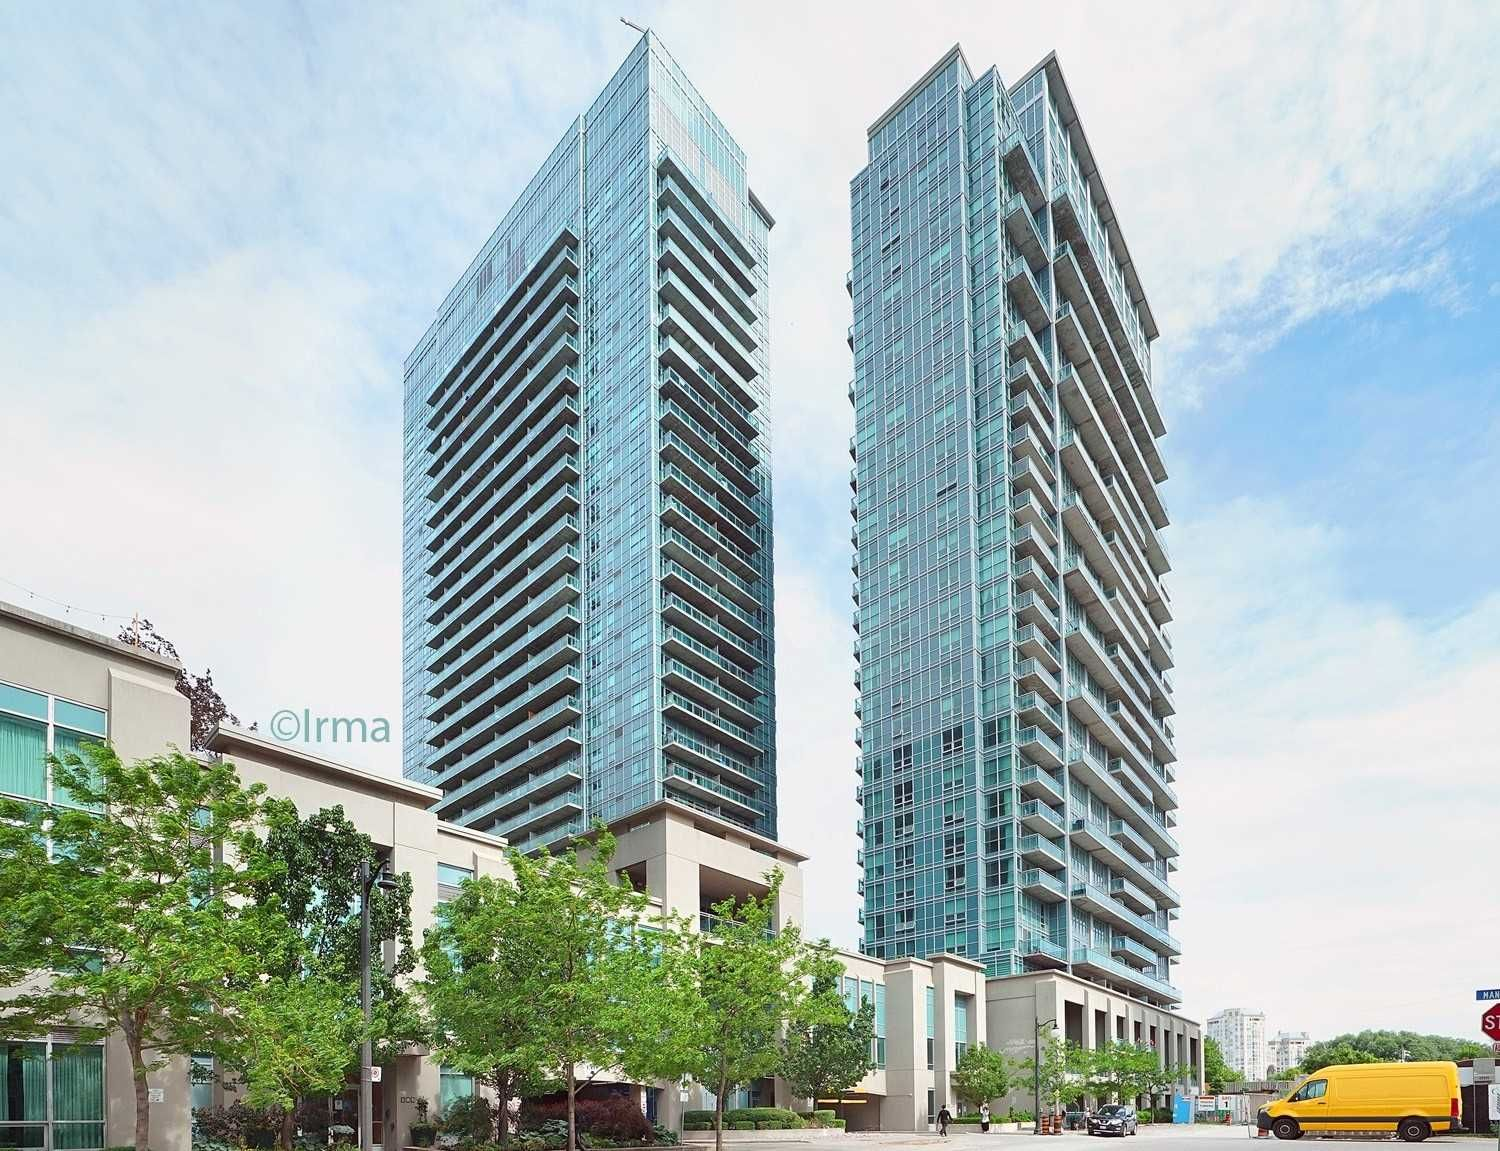 165 Legion Rd N, unit 1228 for sale in Toronto - image #1